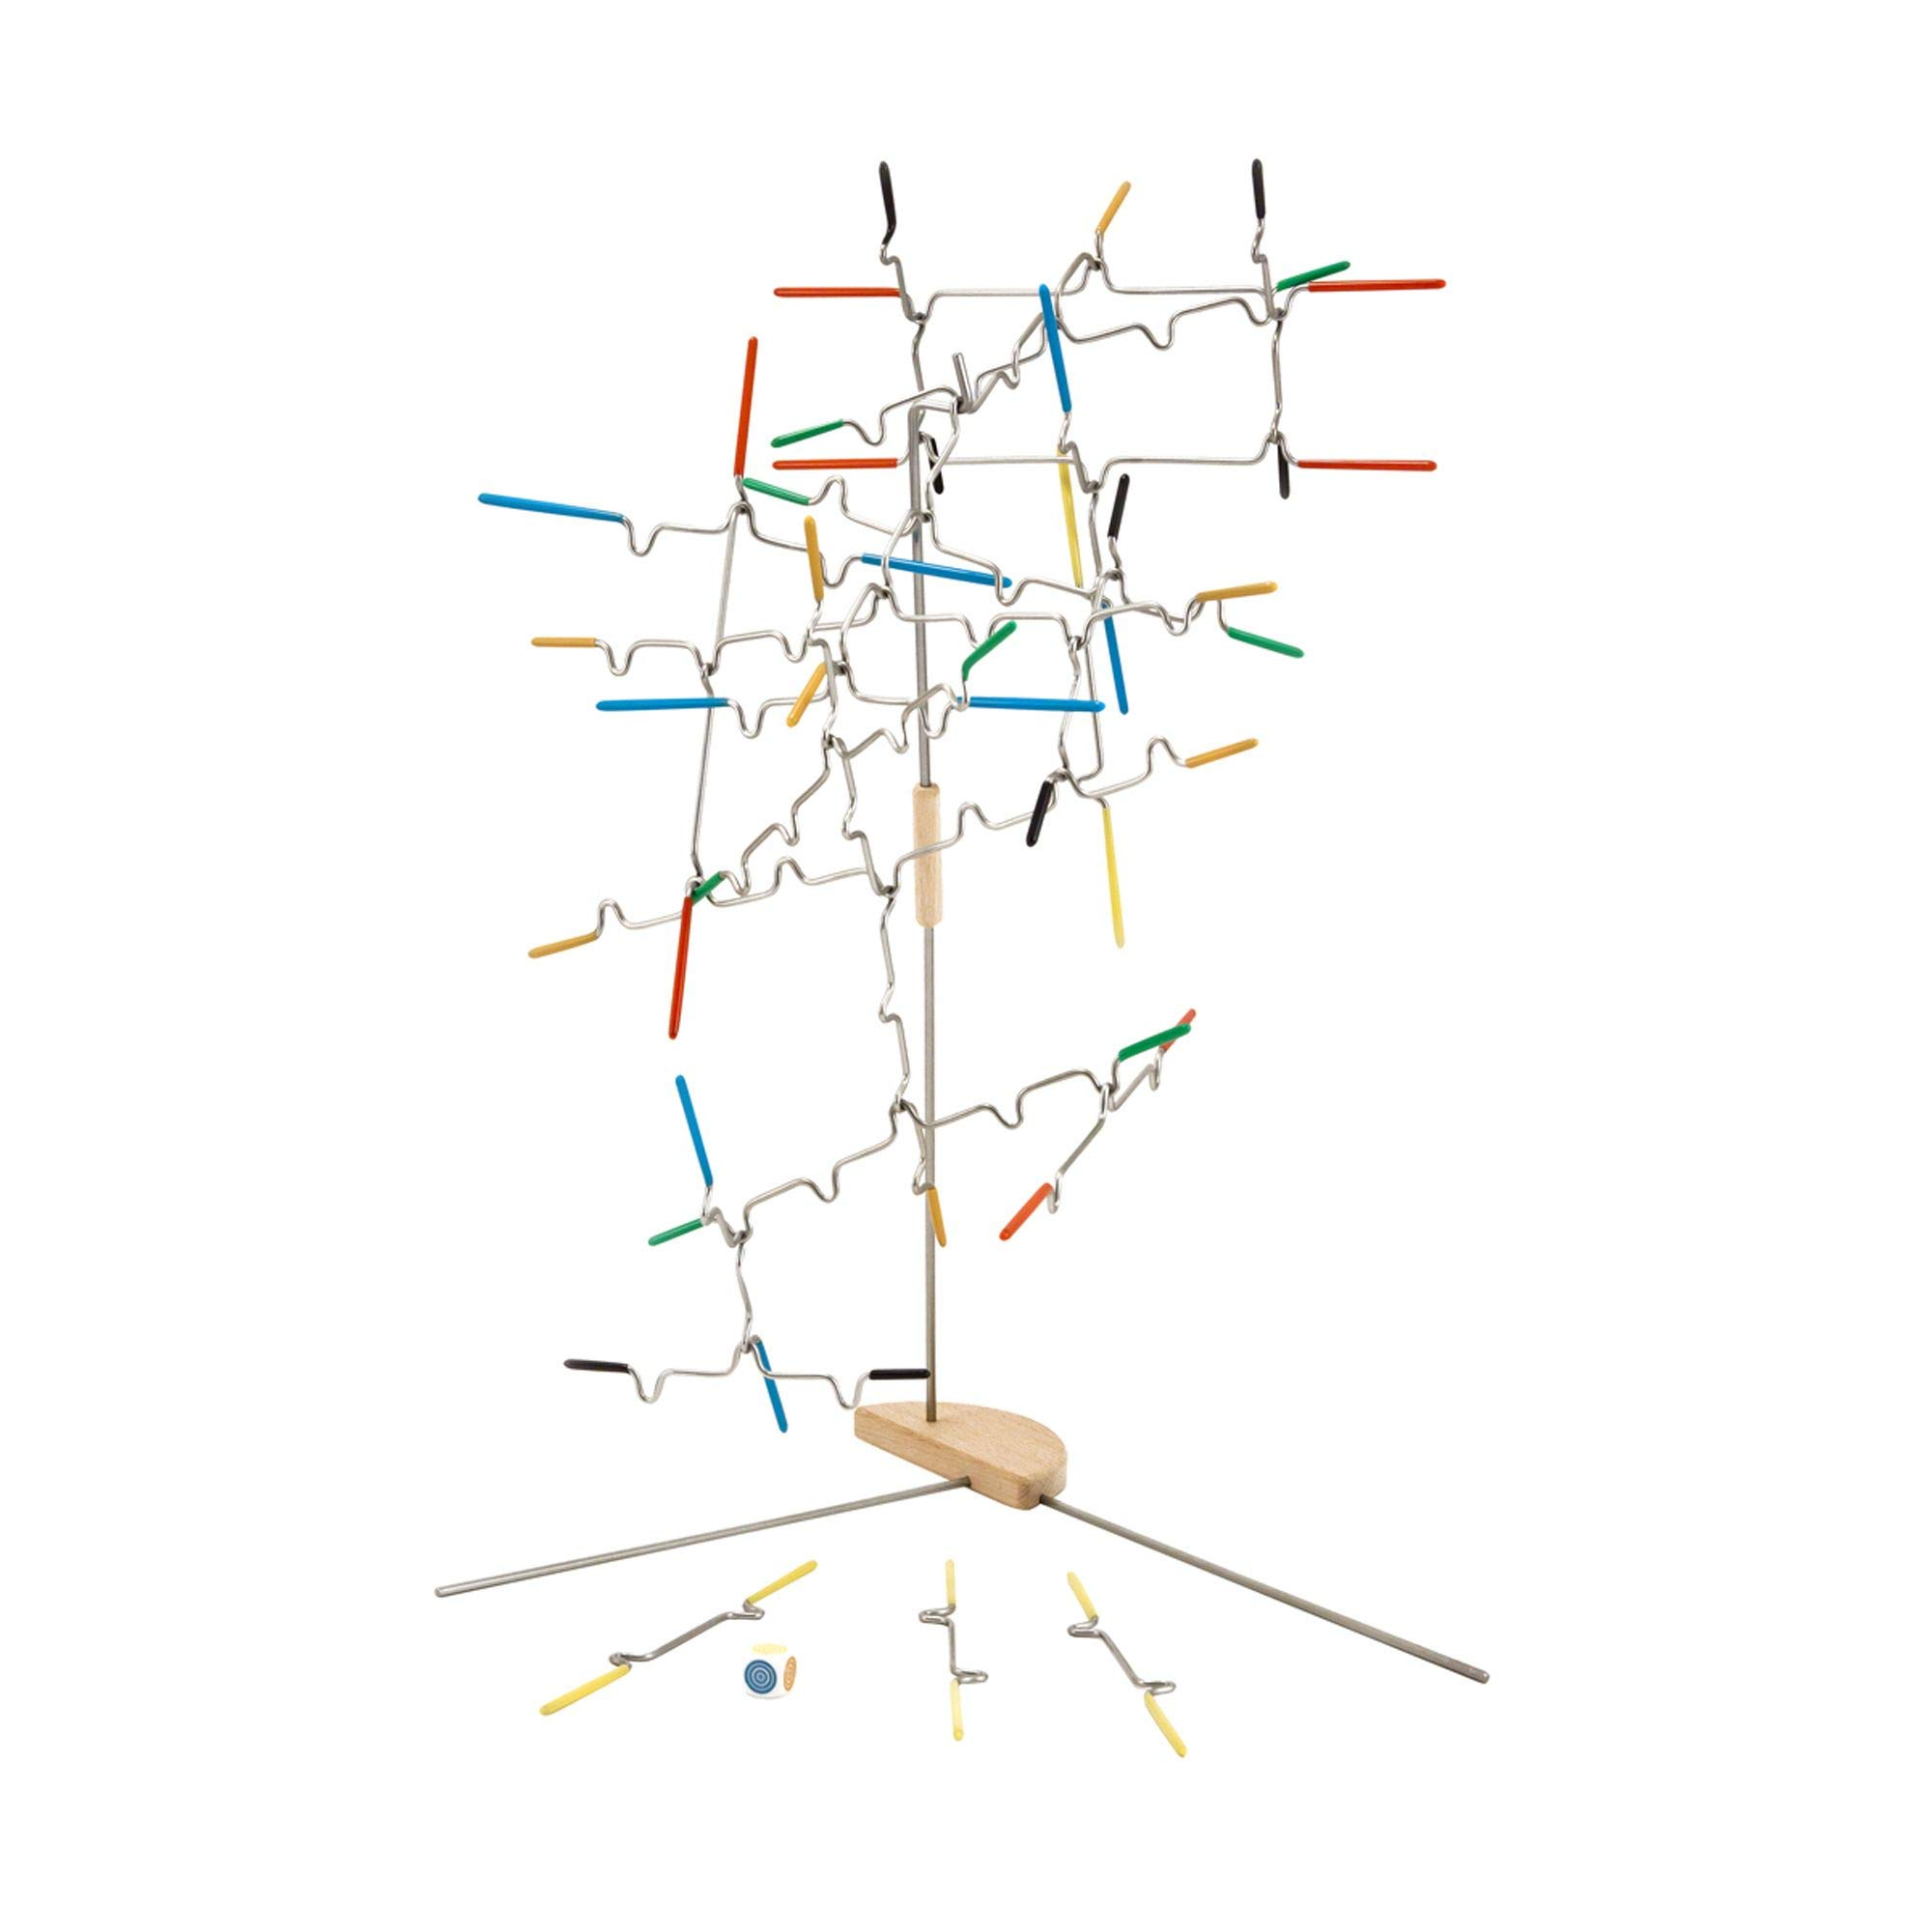 Melissa & Doug Suspend Family Game, Classic Games, Exciting Balancing Game, Develops Hand-Eye Coordination, 12.5'' H x 2.8'' W x 2.8'' L by Melissa & Doug (Image #5)